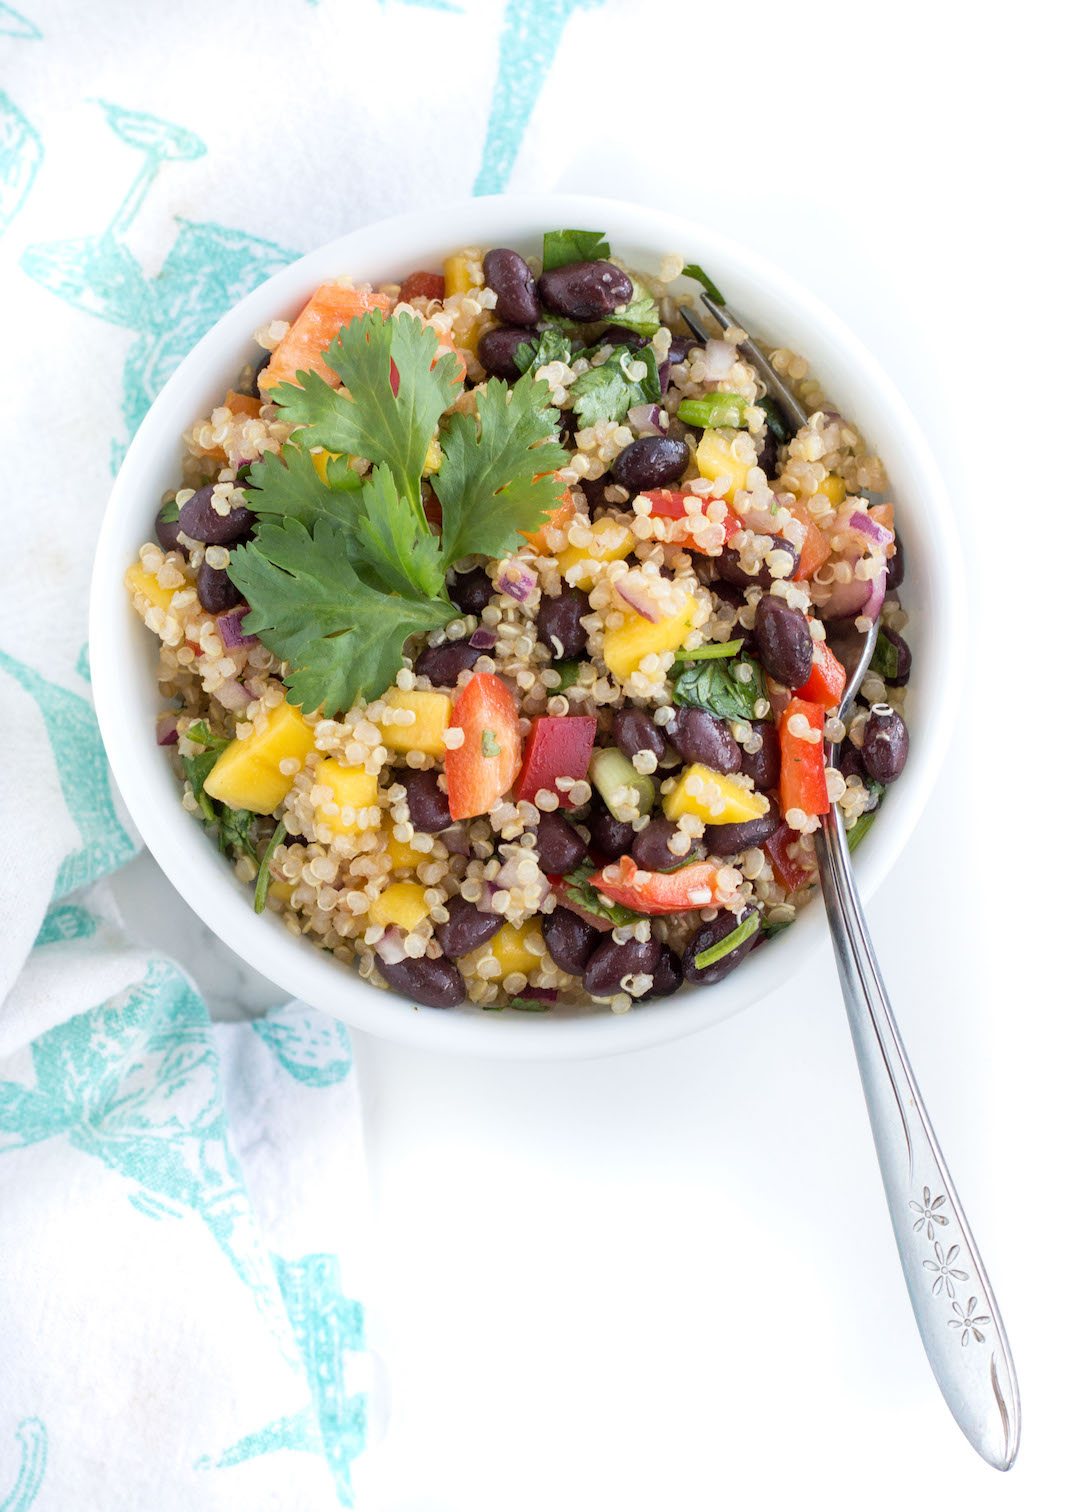 IF YOU MAKE THIS BLACK BEAN MANGO QUINOA SALAD RECIPE, LET ME KNOW ...